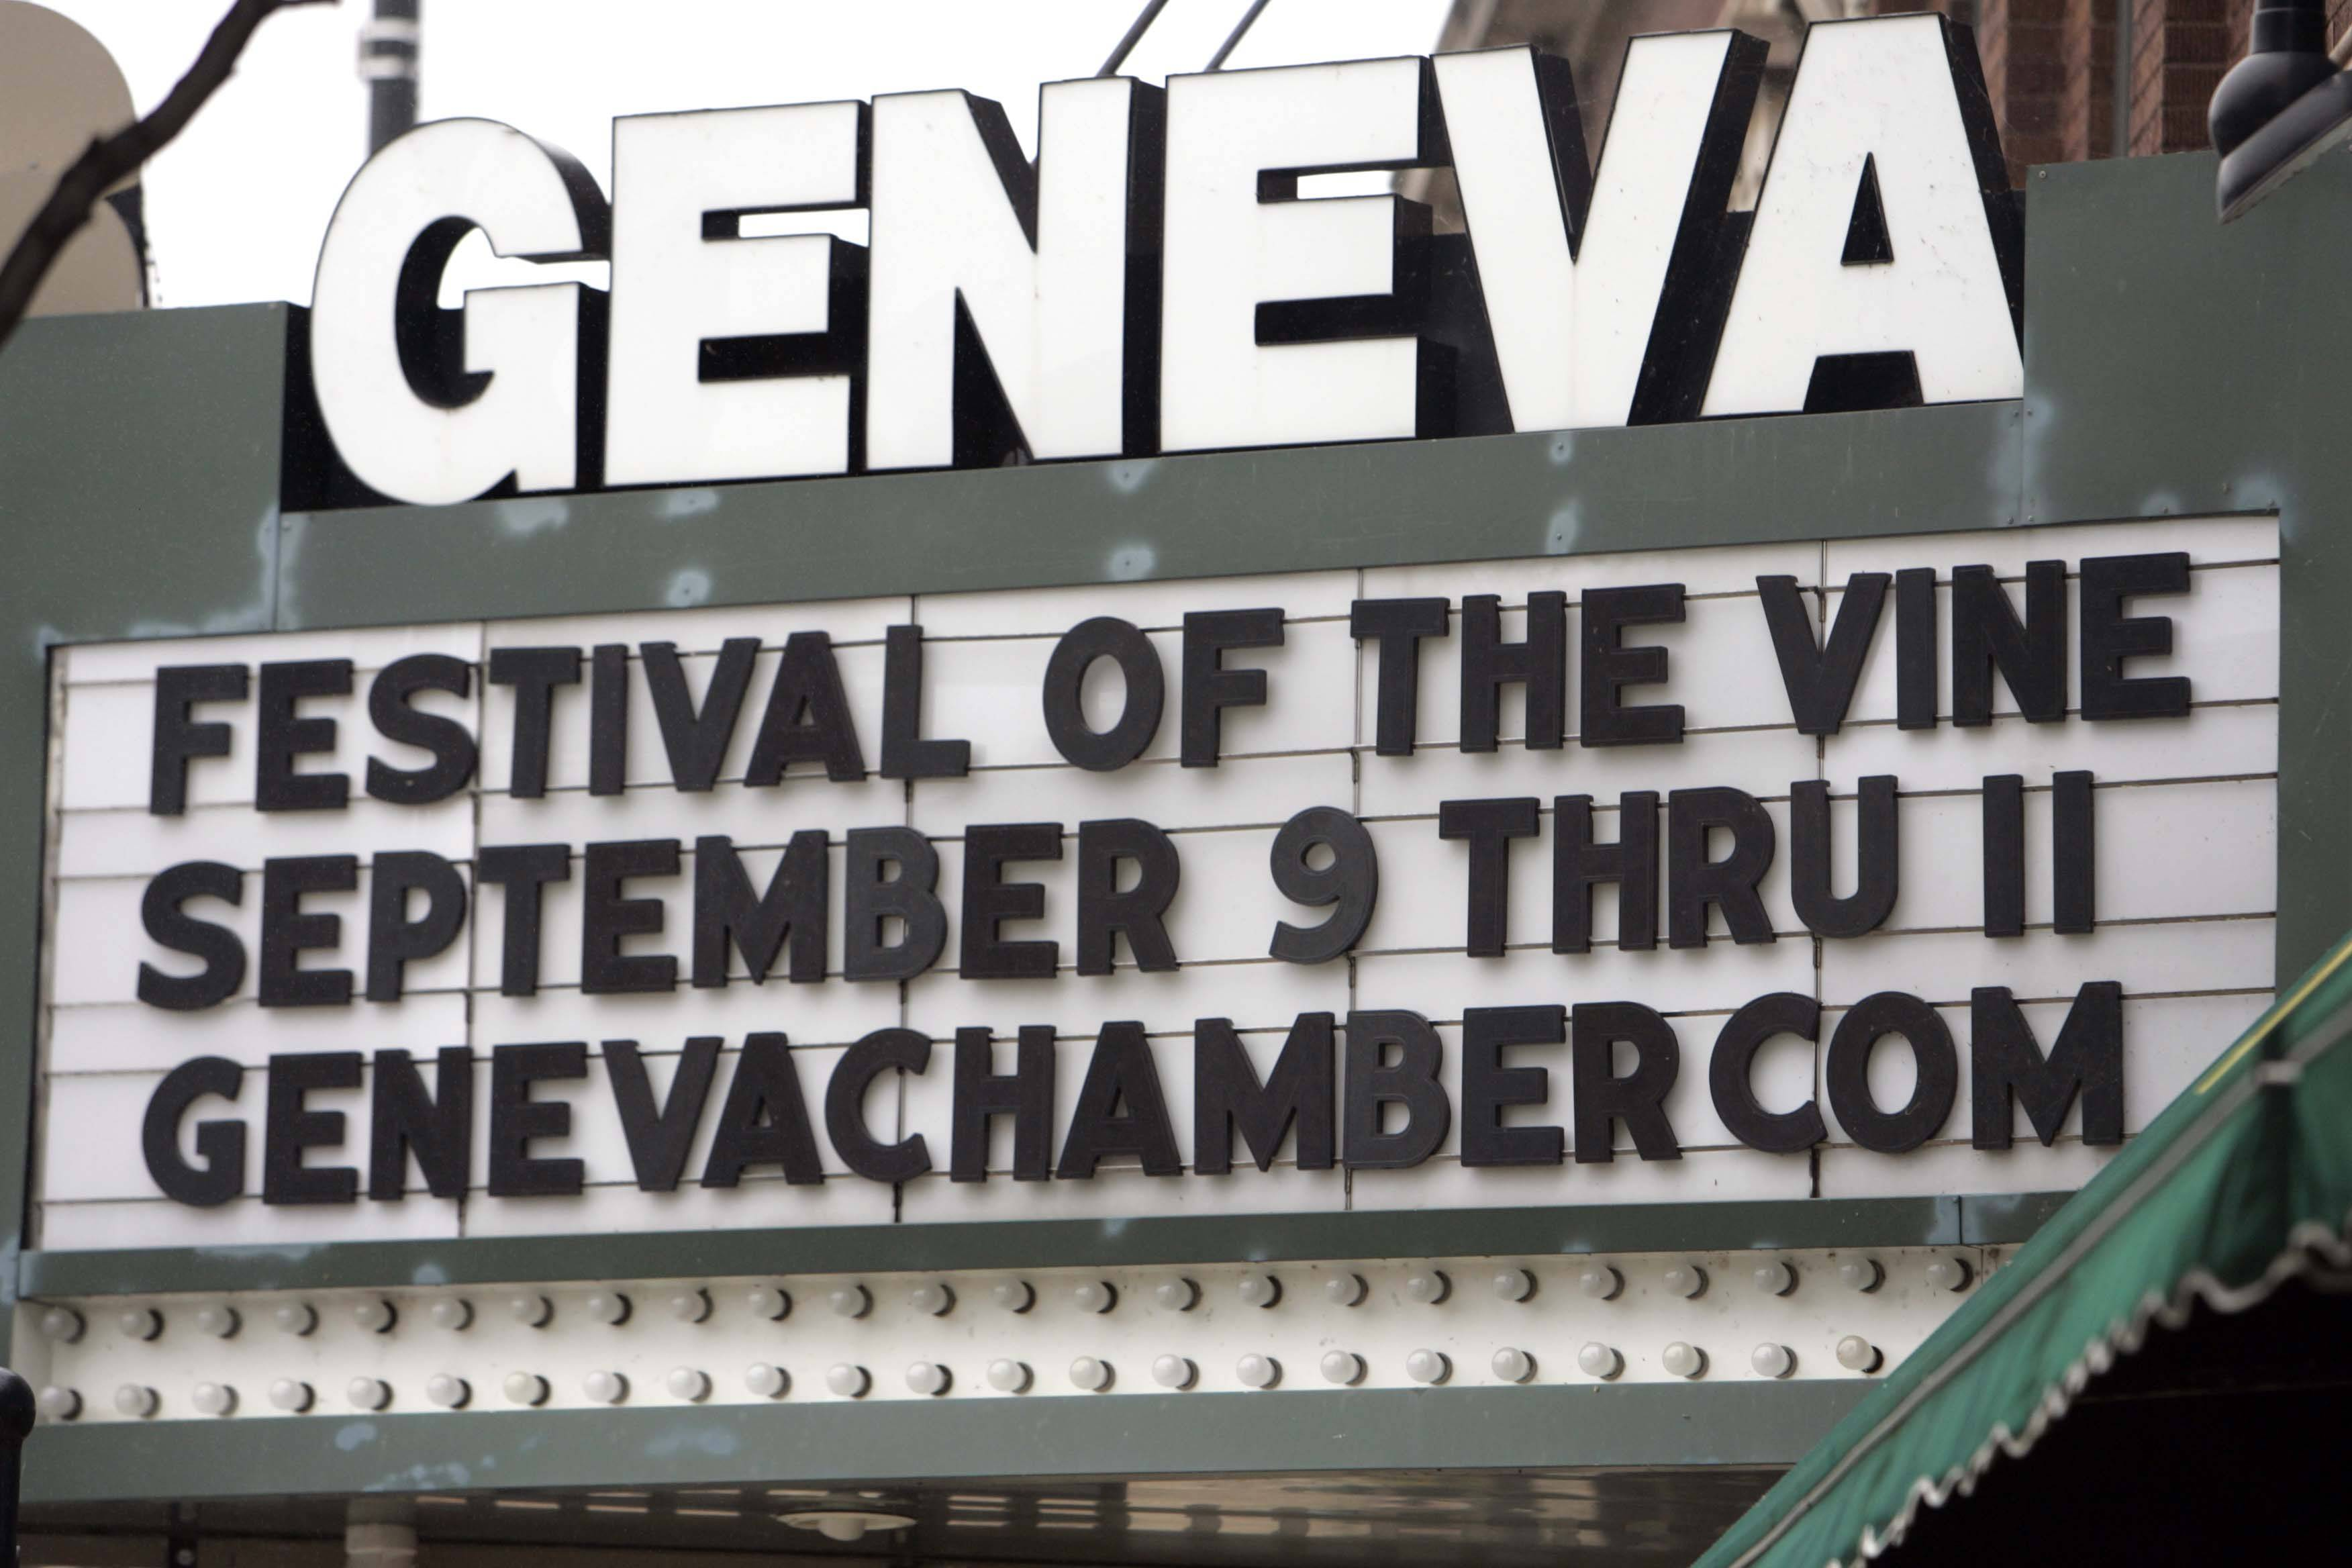 A sign at the Geneva movie theater announces the Festival of the Vine in Geneva on Friday.